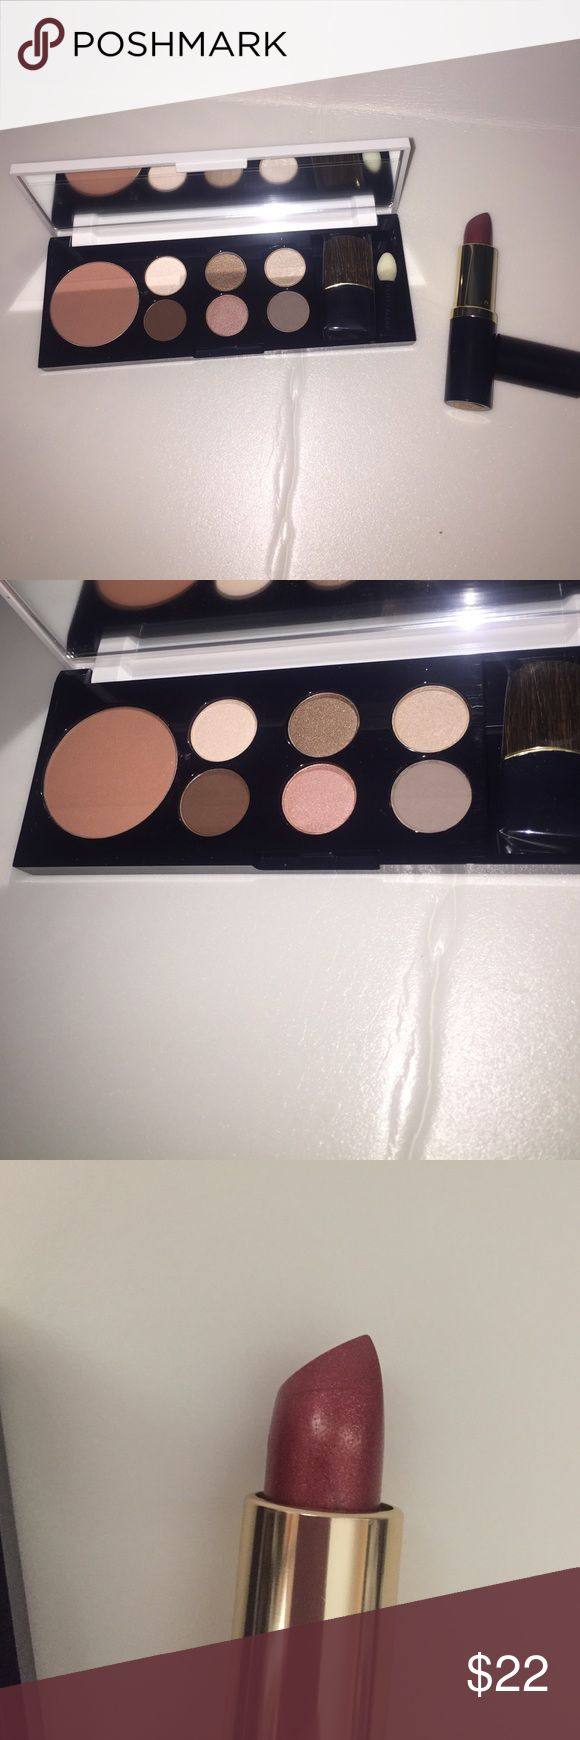 ESTEE Lauder makeup set BRAND NEW AND AUTHENTIC. Eyeshadow palette with blush plus ESTEE Lauder lipstick in the color sunstone Sephora Makeup